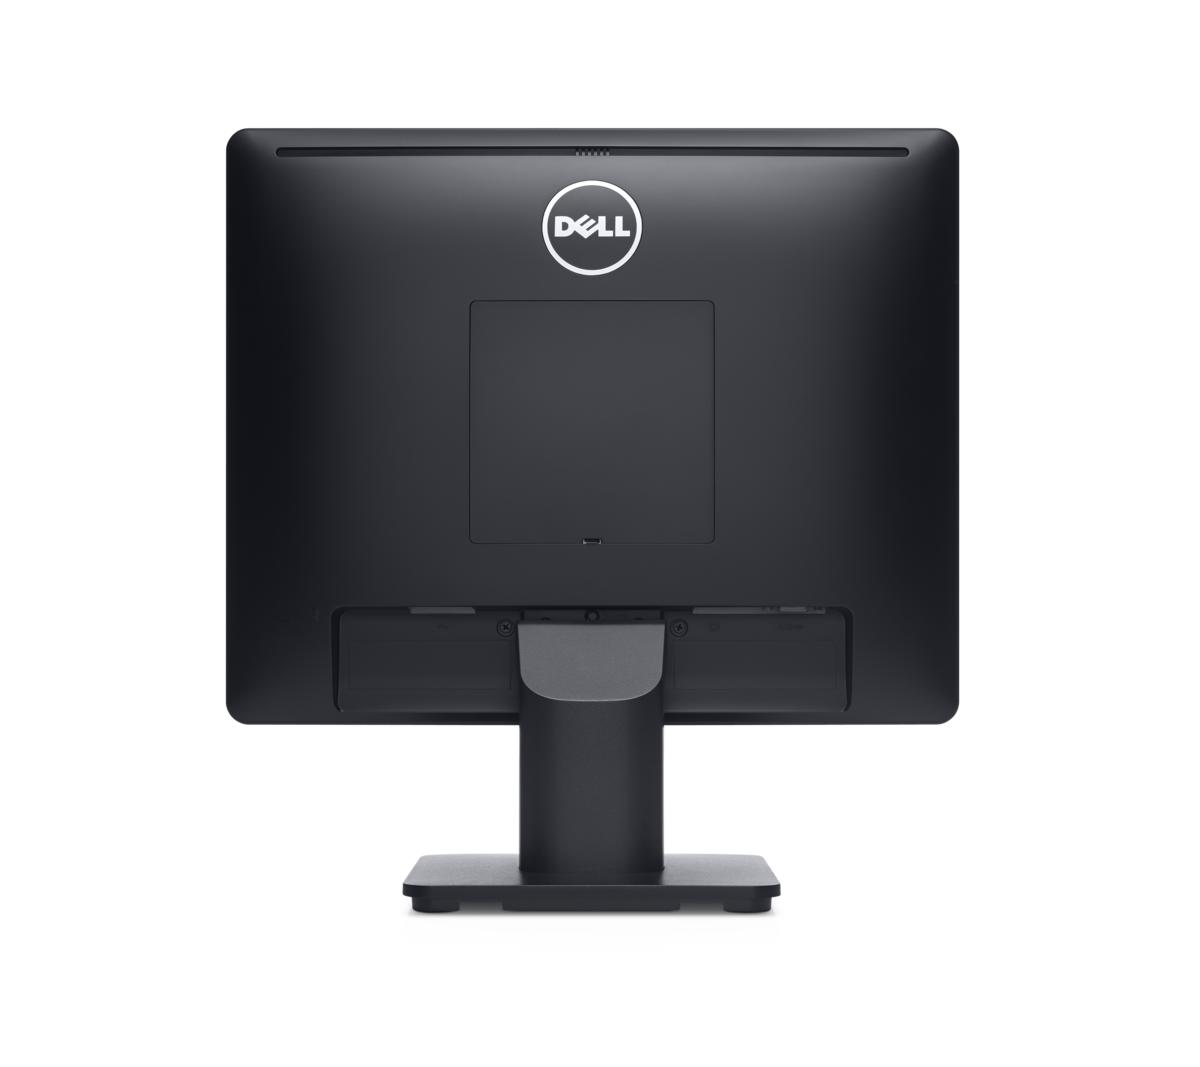 Snsp1917s Dell 19 Monitor P1917s Led Warranty 3 Yrs Advance Exchange Nbd P Series